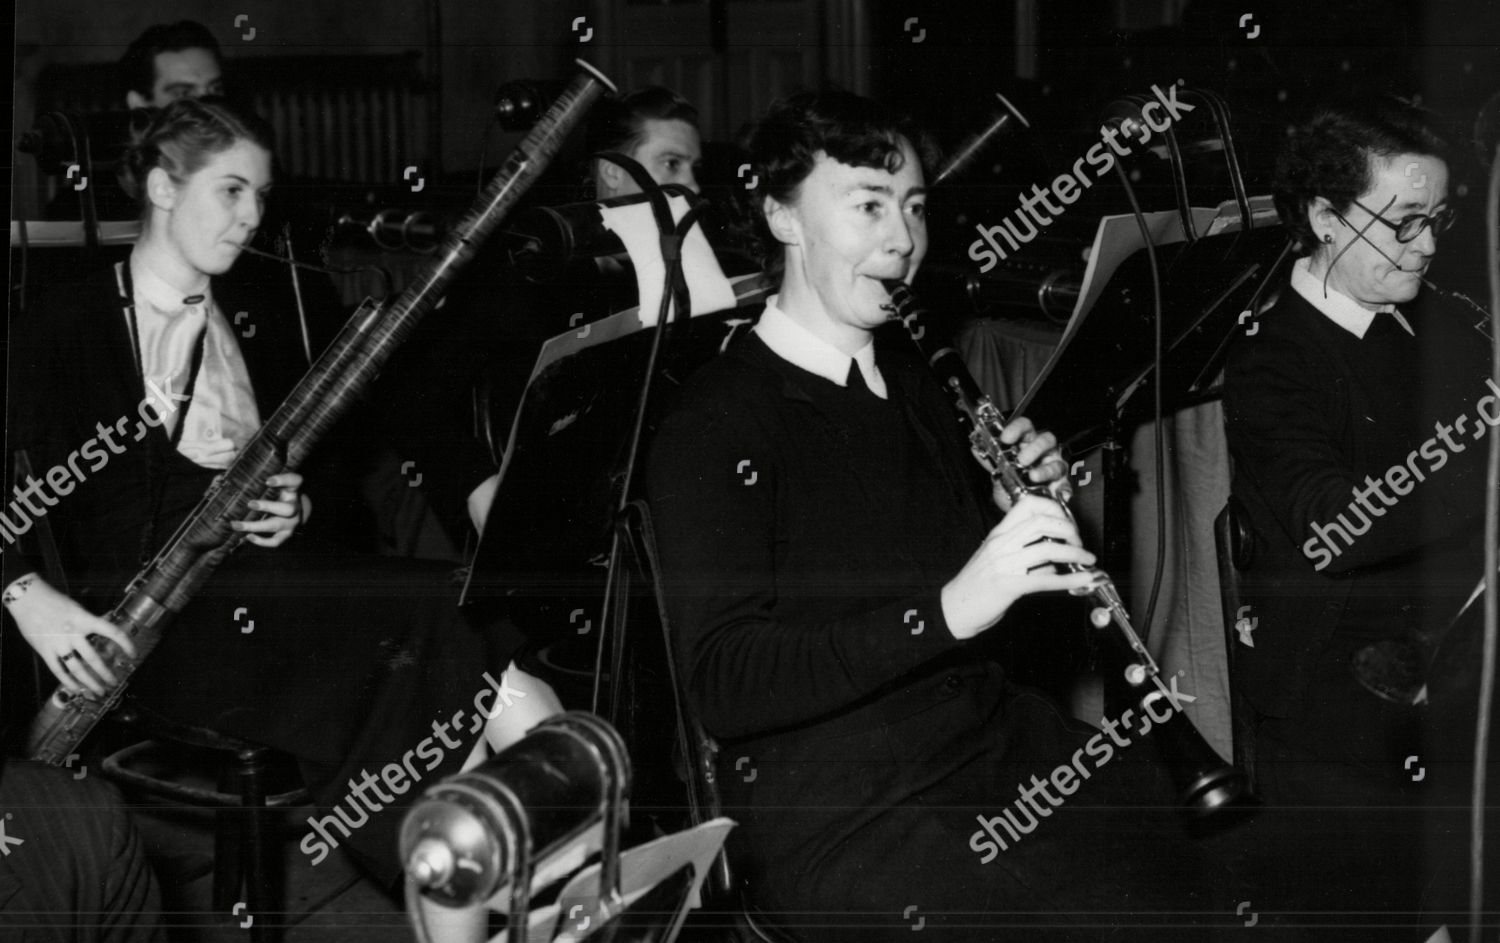 Mandatory Credit: Photo by ANL/Shutterstock (3880870a) Miss Eileen Tranmer The British Women's Chess Champion Pictured Here Playing A Clarinet In The Orchestra While Appearing At The Theatre Royal Glasgow.